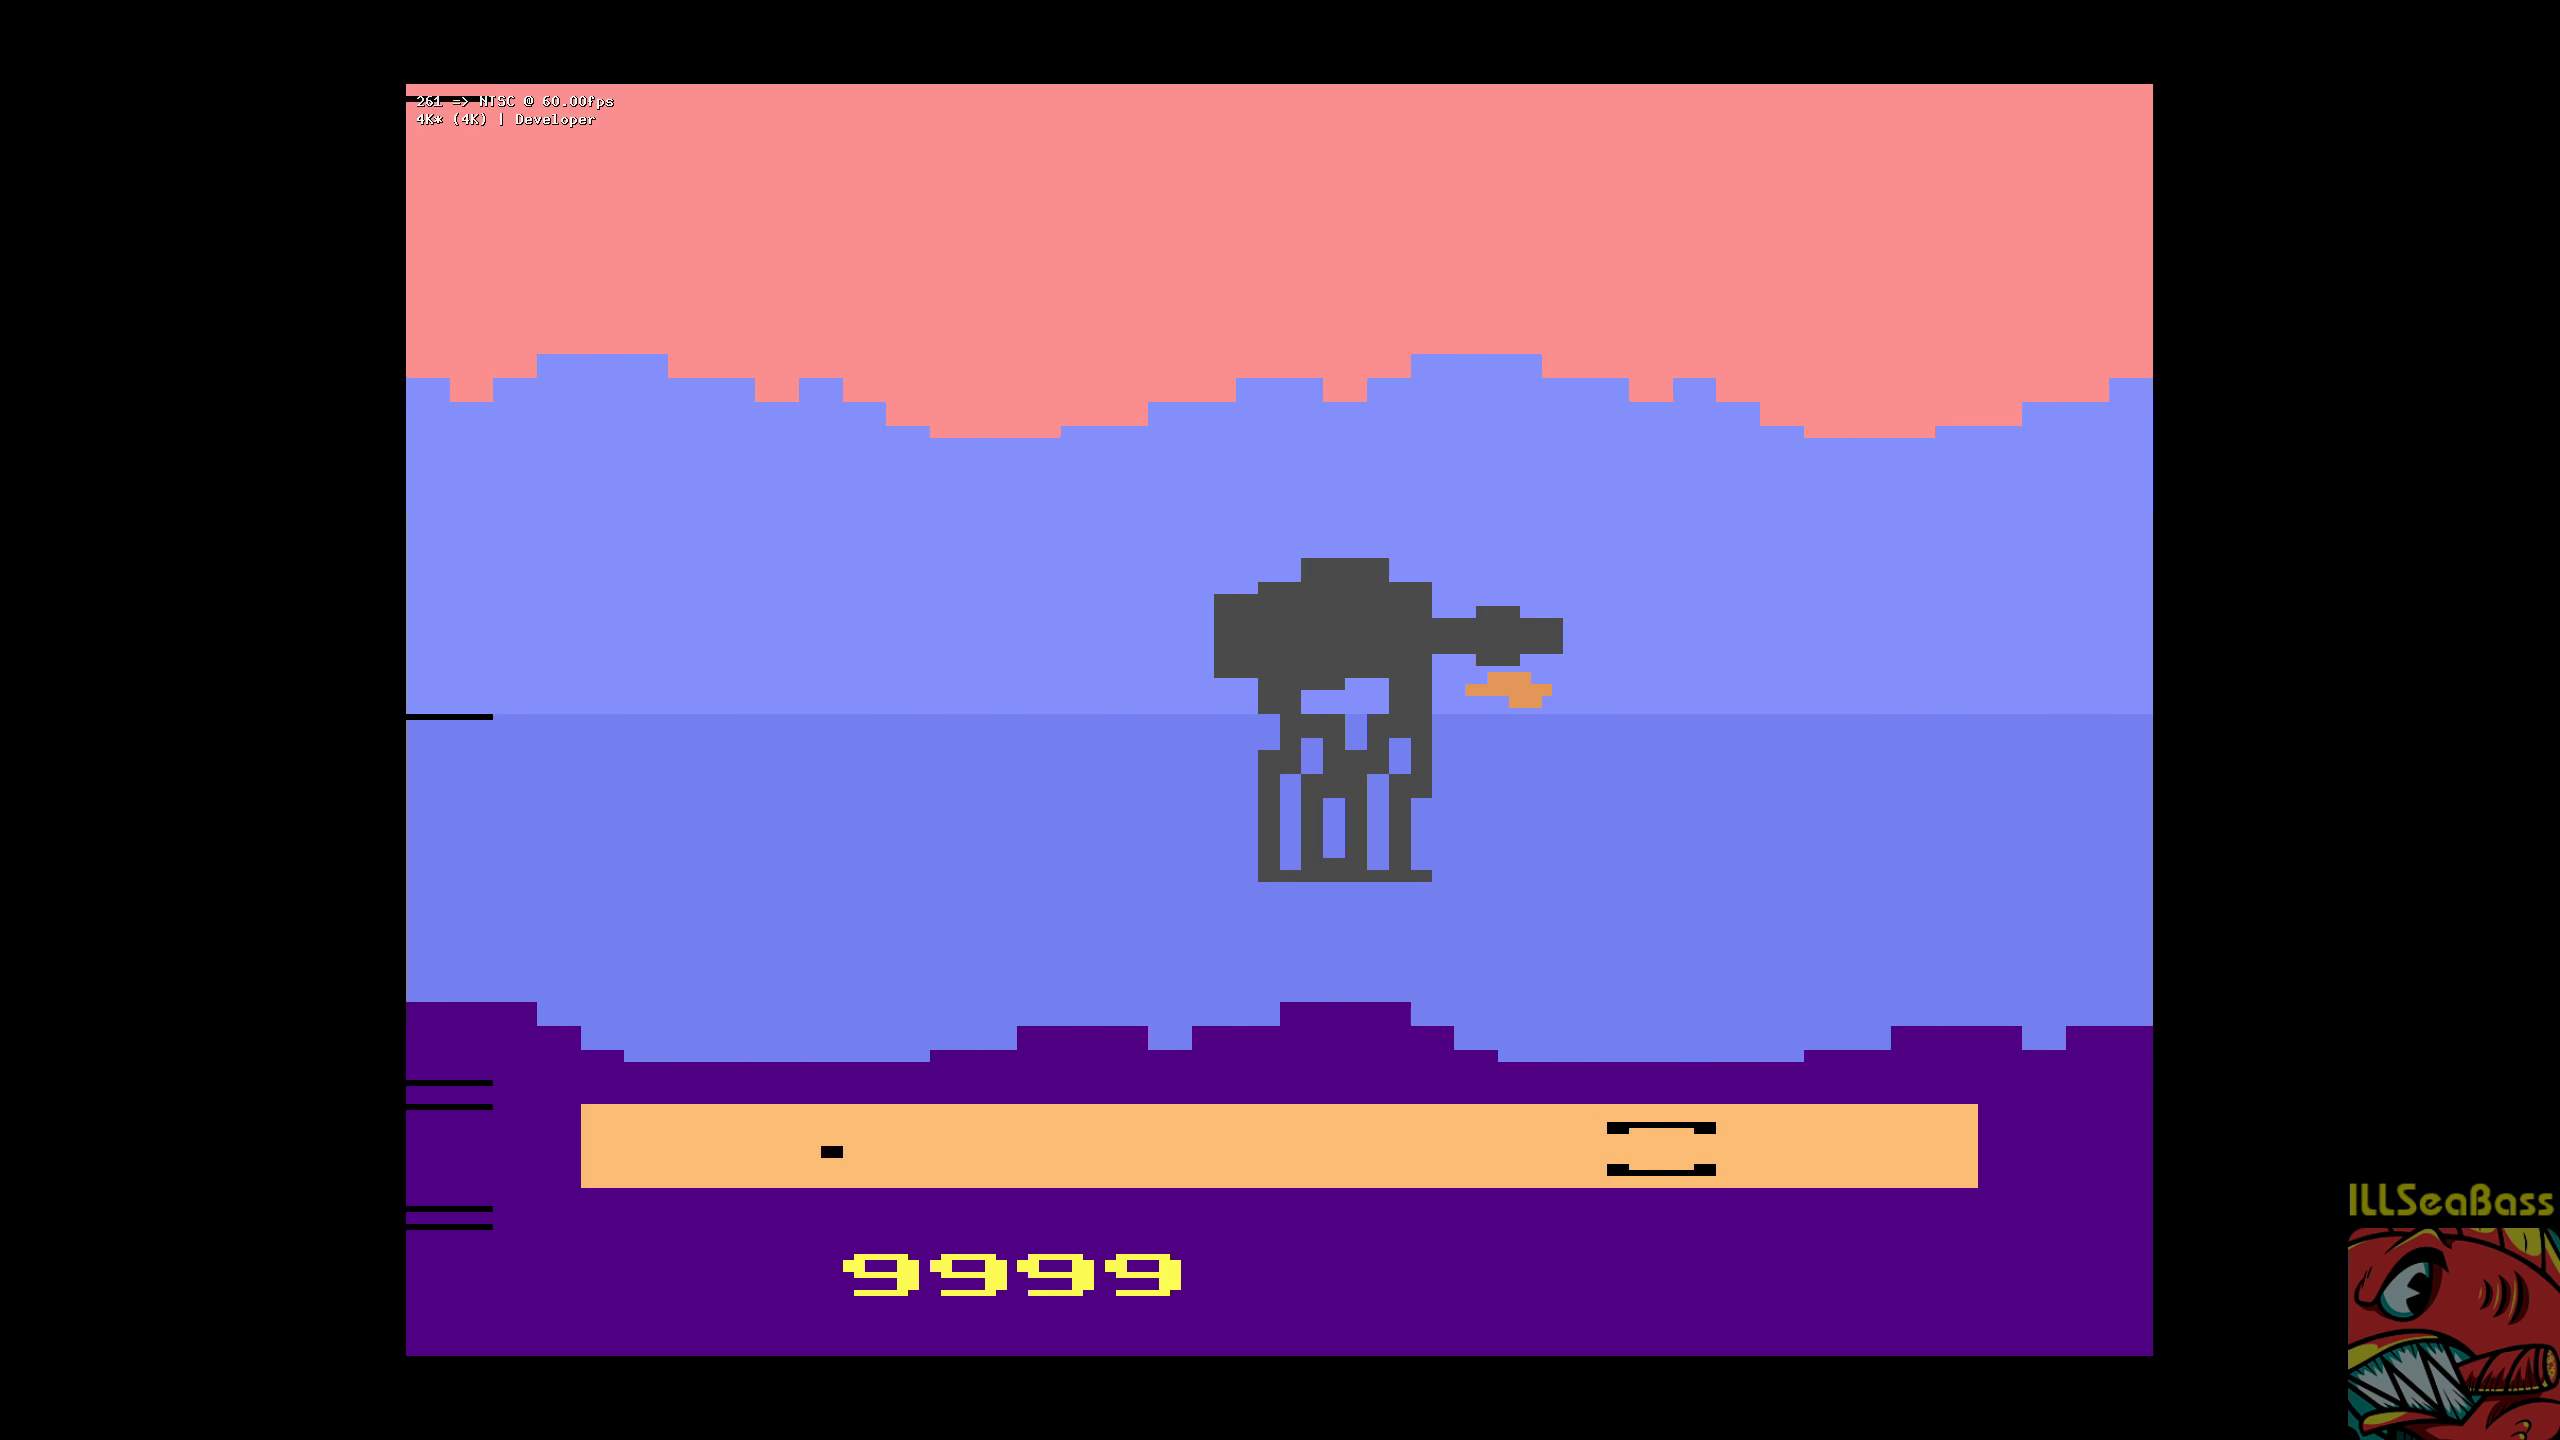 ILLSeaBass: Star Wars: Empire Strikes Back (Atari 2600 Emulated Novice/B Mode) 11,488 points on 2018-06-20 23:16:44